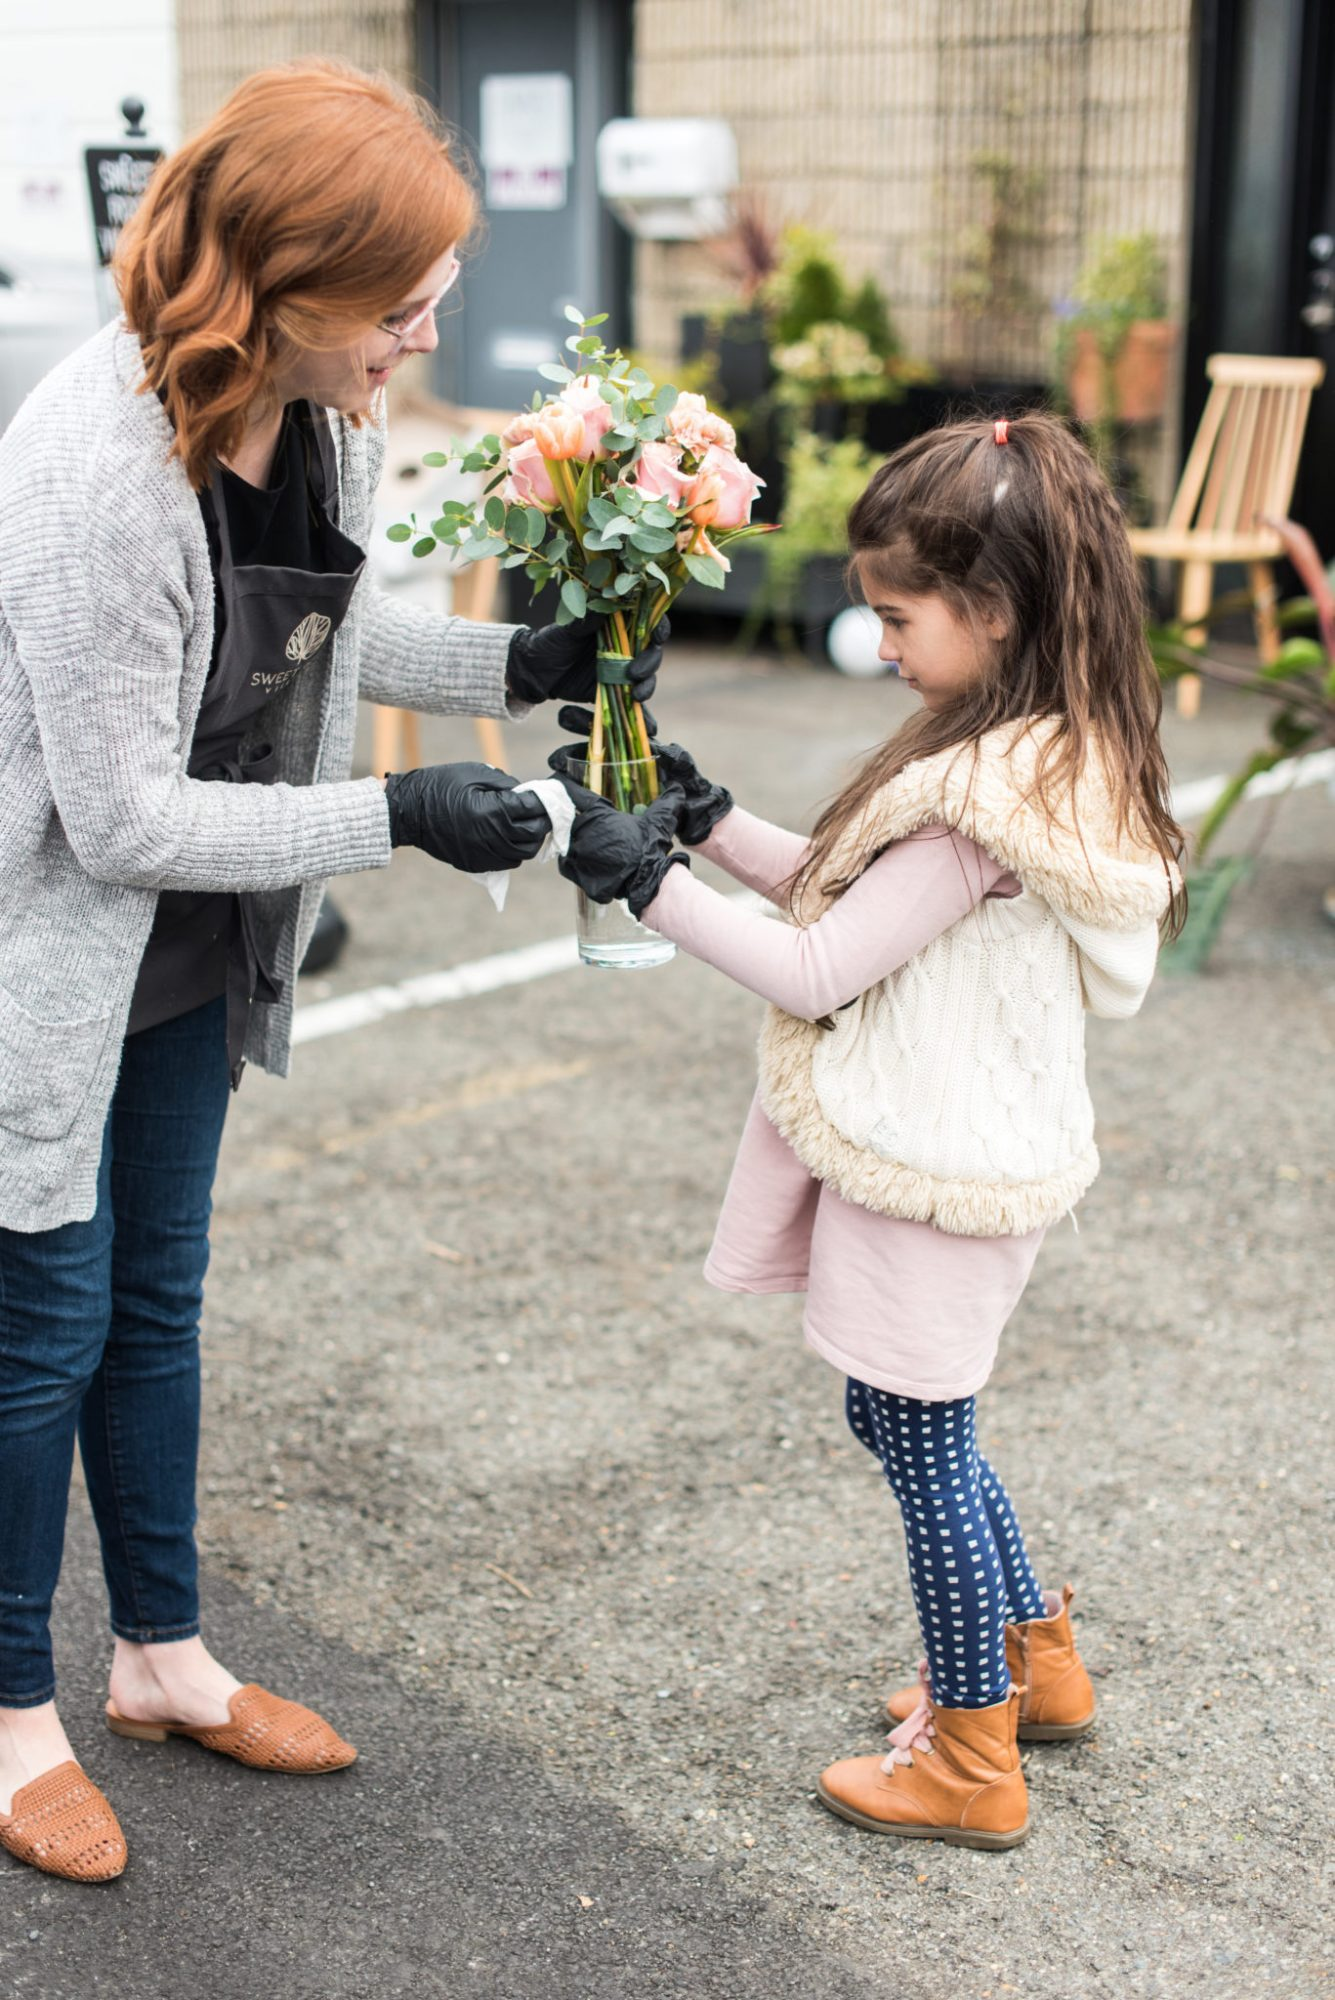 Florists Using Blooms from Canceled Events for Good